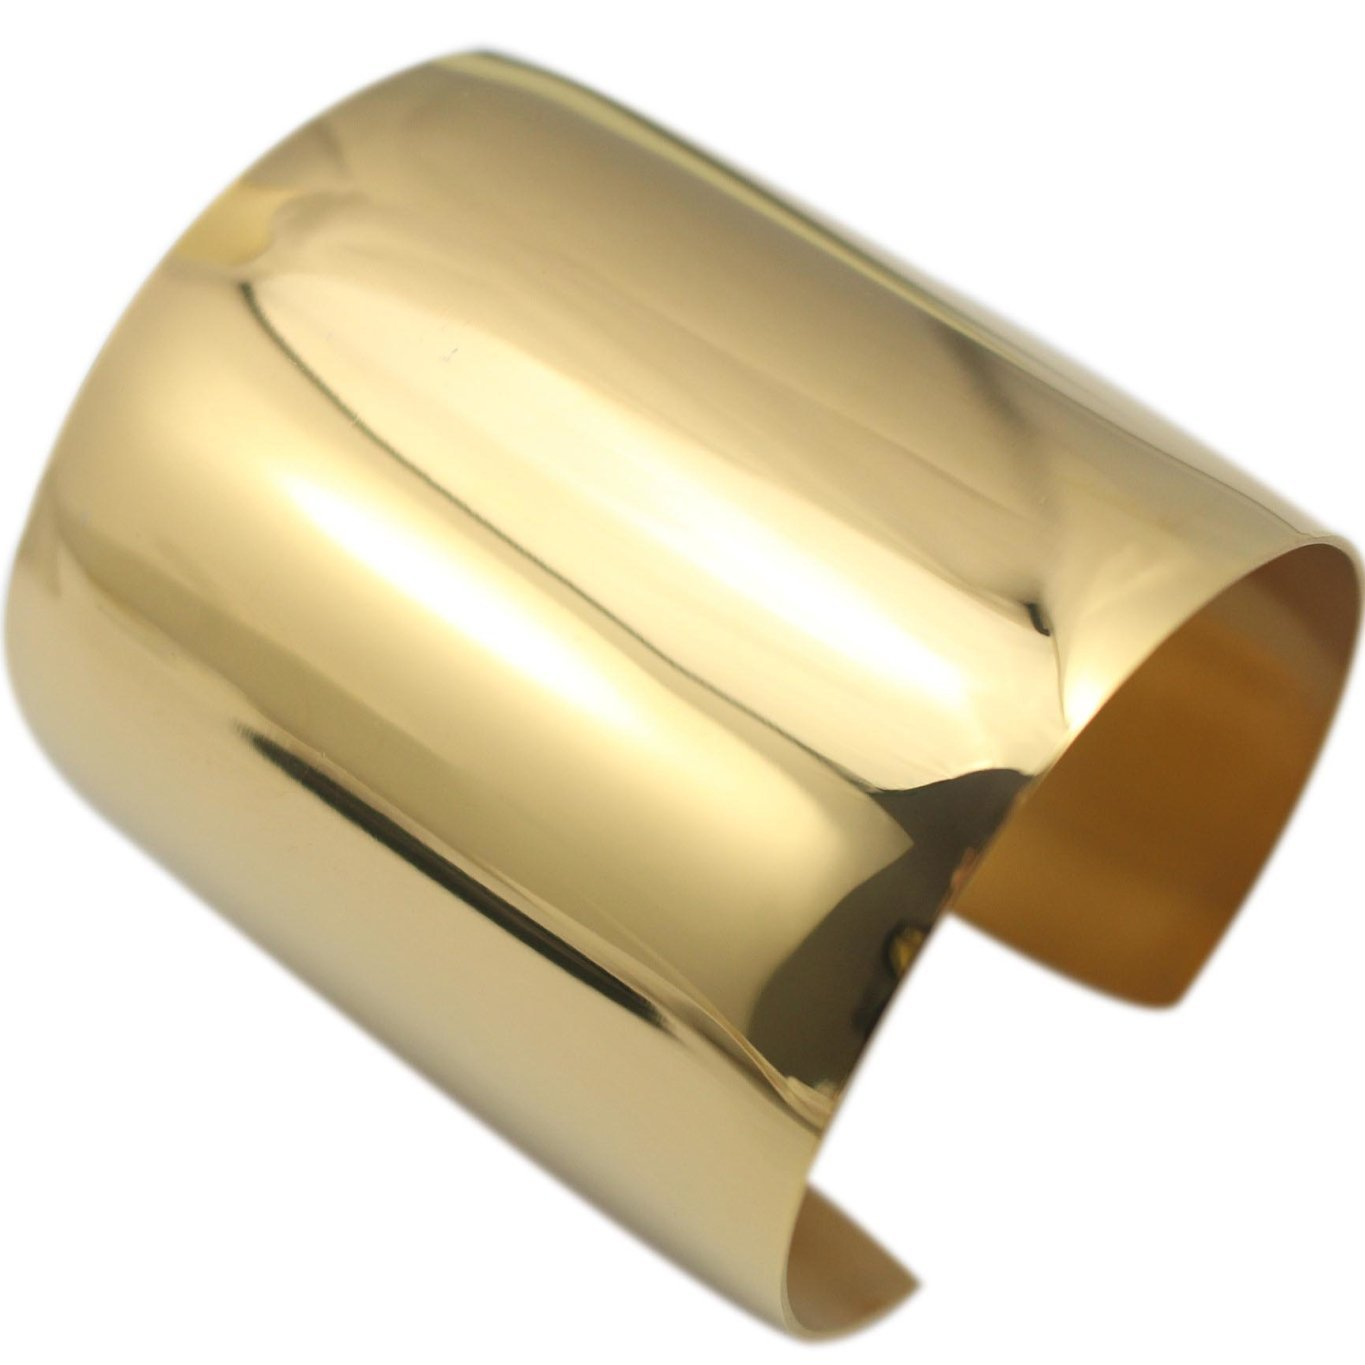 Carfeny High Polished Stainless Steel Smooth Wide Cuff Bangle Bracelet for Women, Gold, Rose Gold and Silver Available